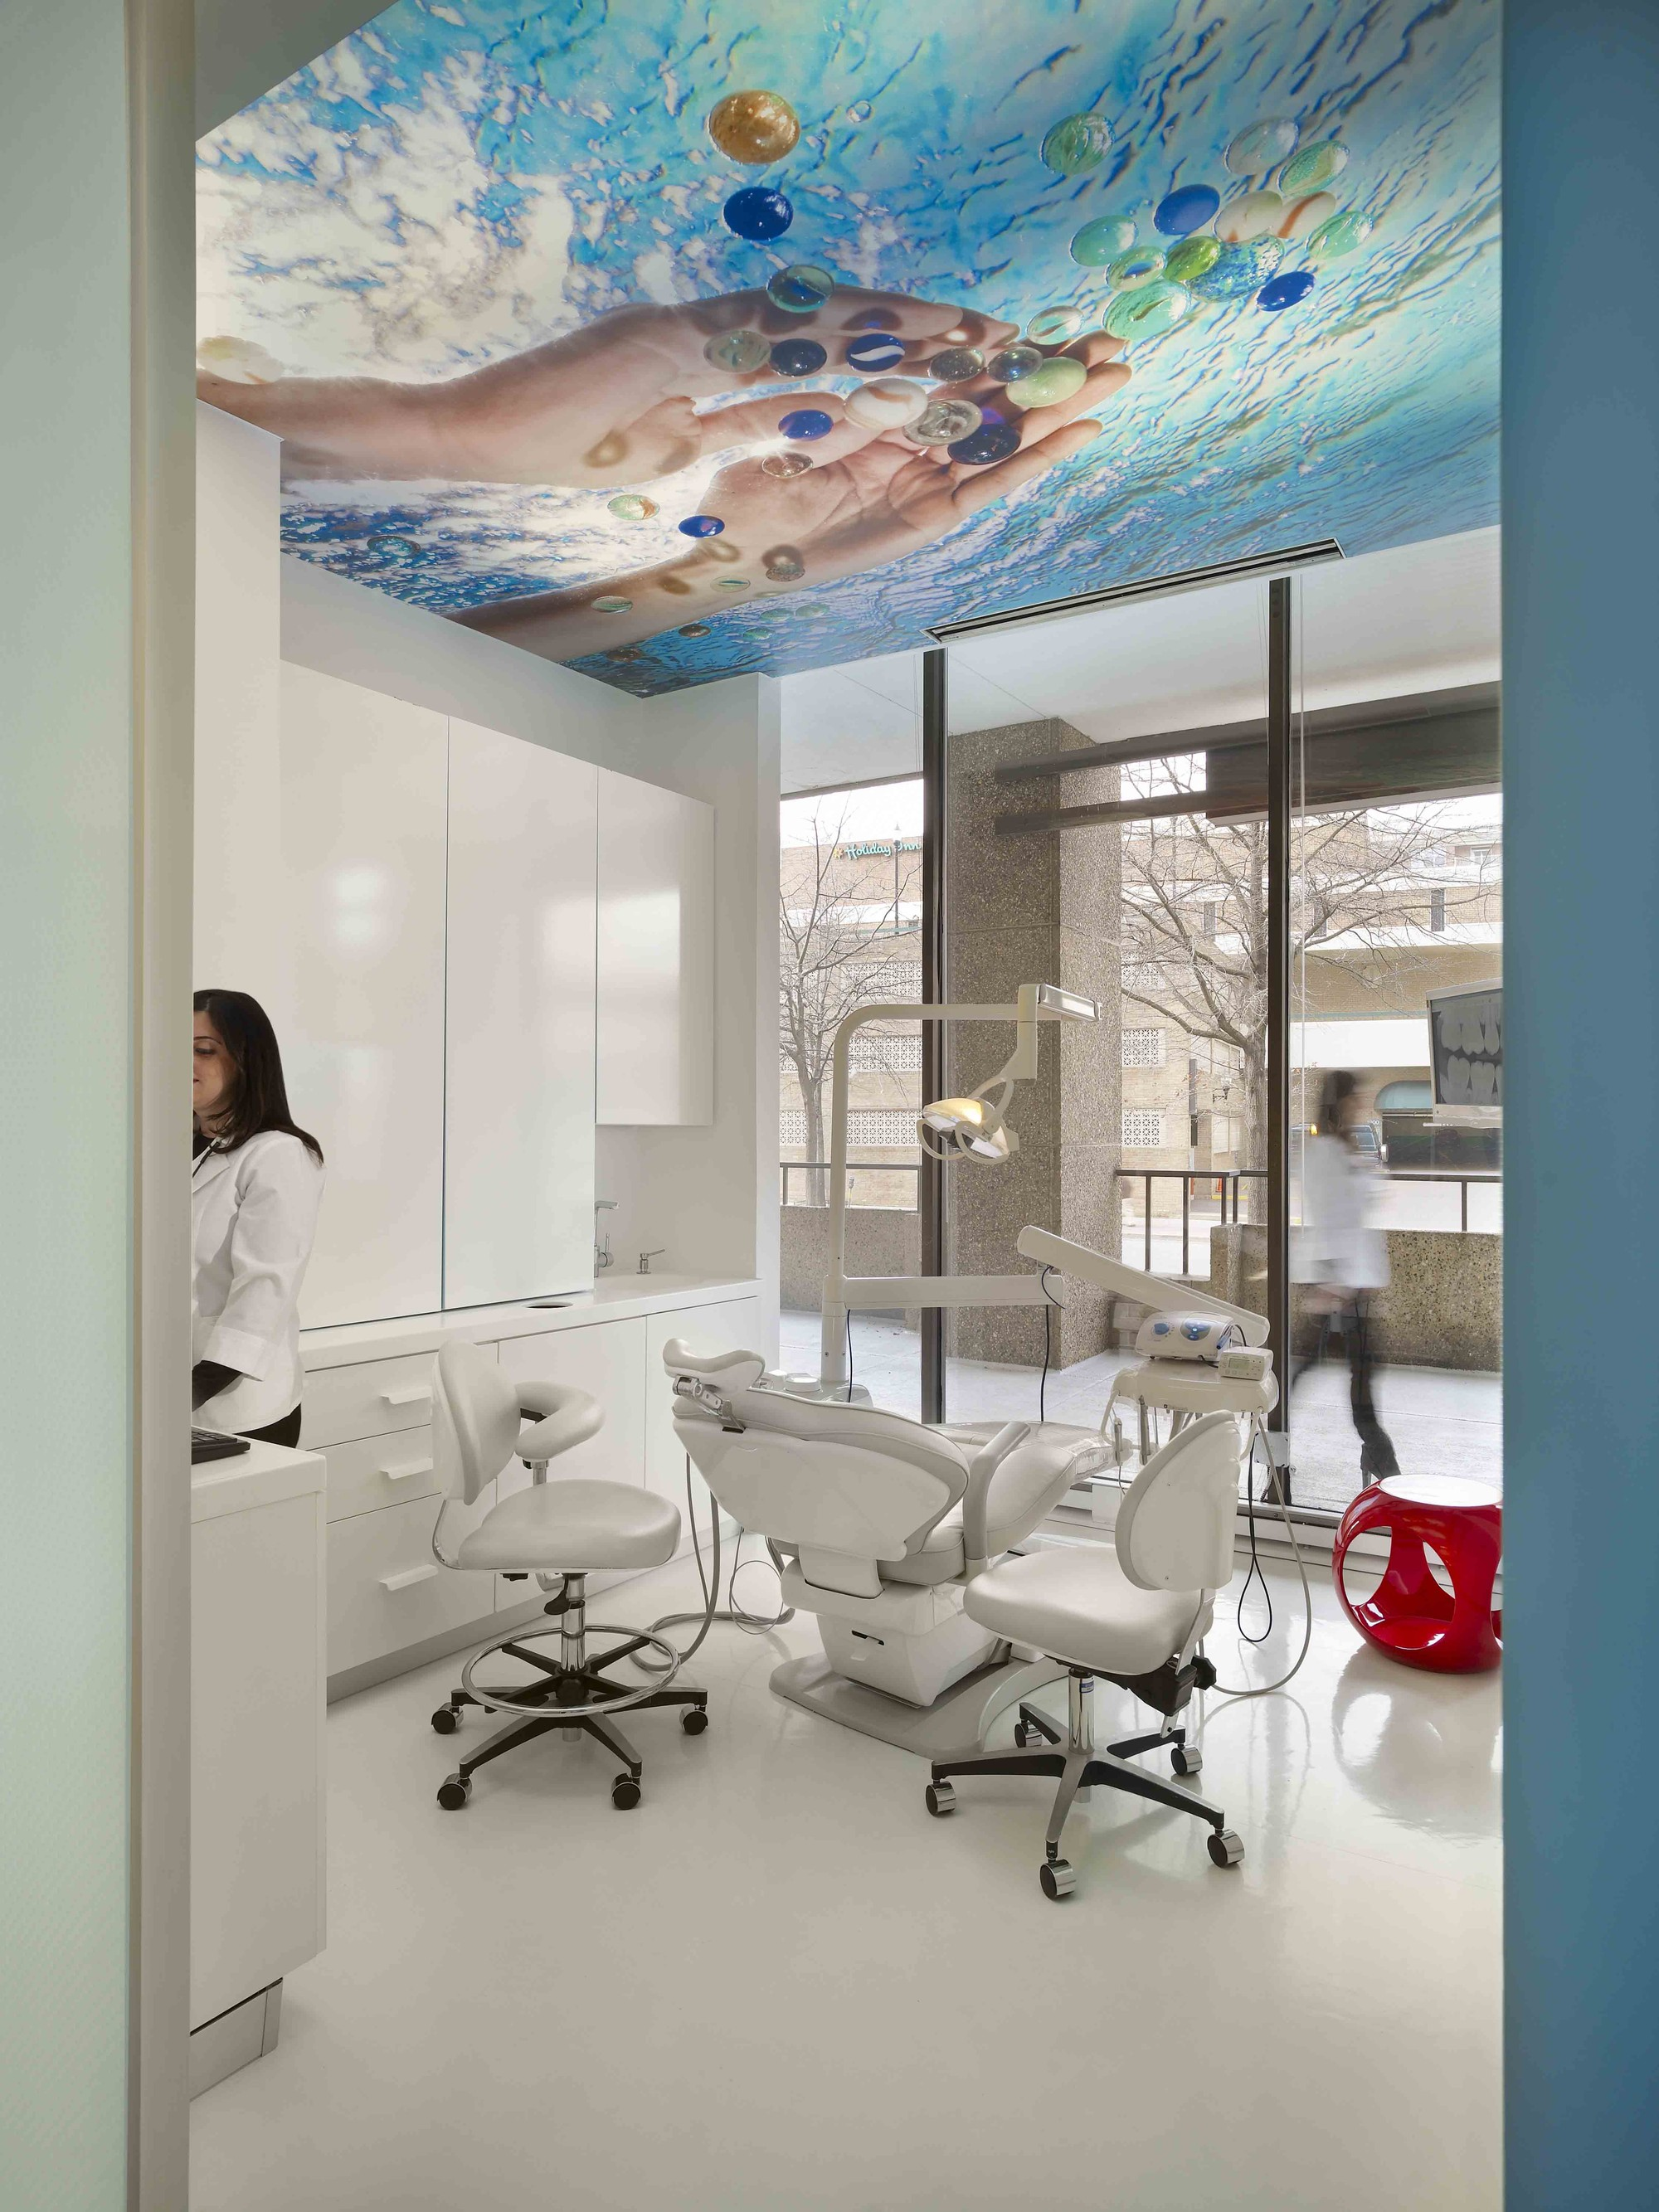 dental office interior design. Zoom Image | View Original Size Dental Office Interior Design E